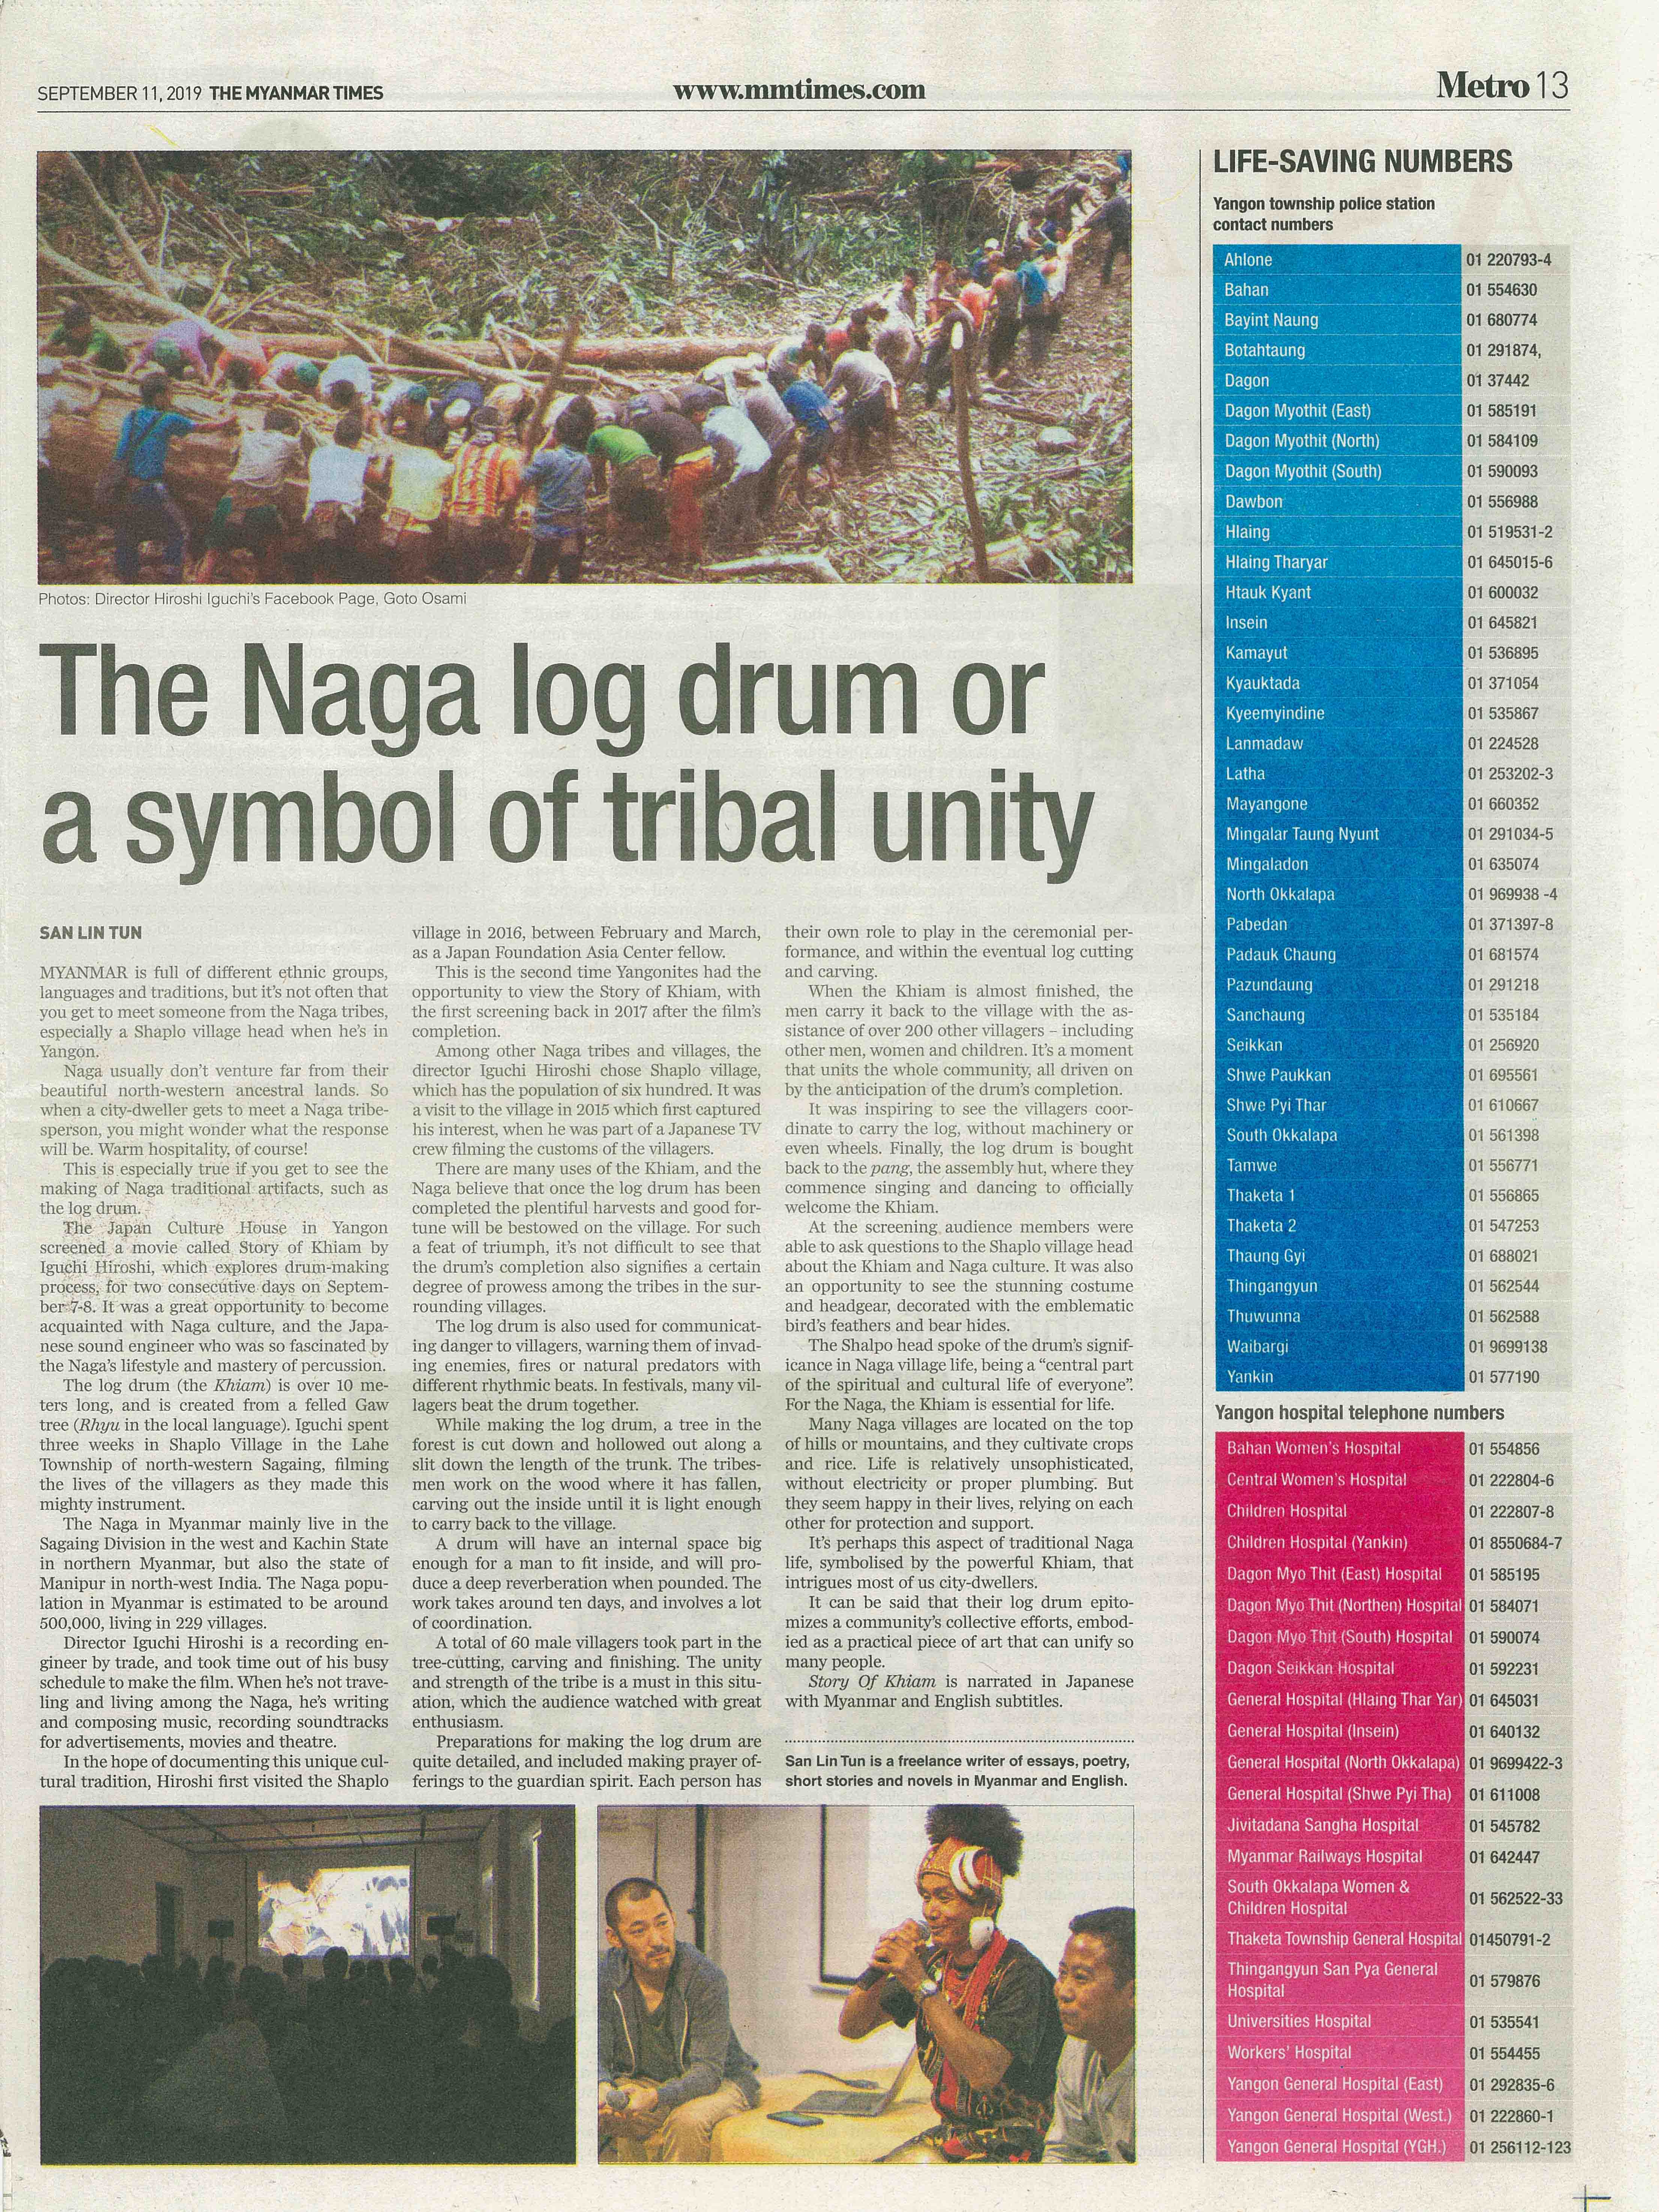 Newspaper|MyanmarTimes